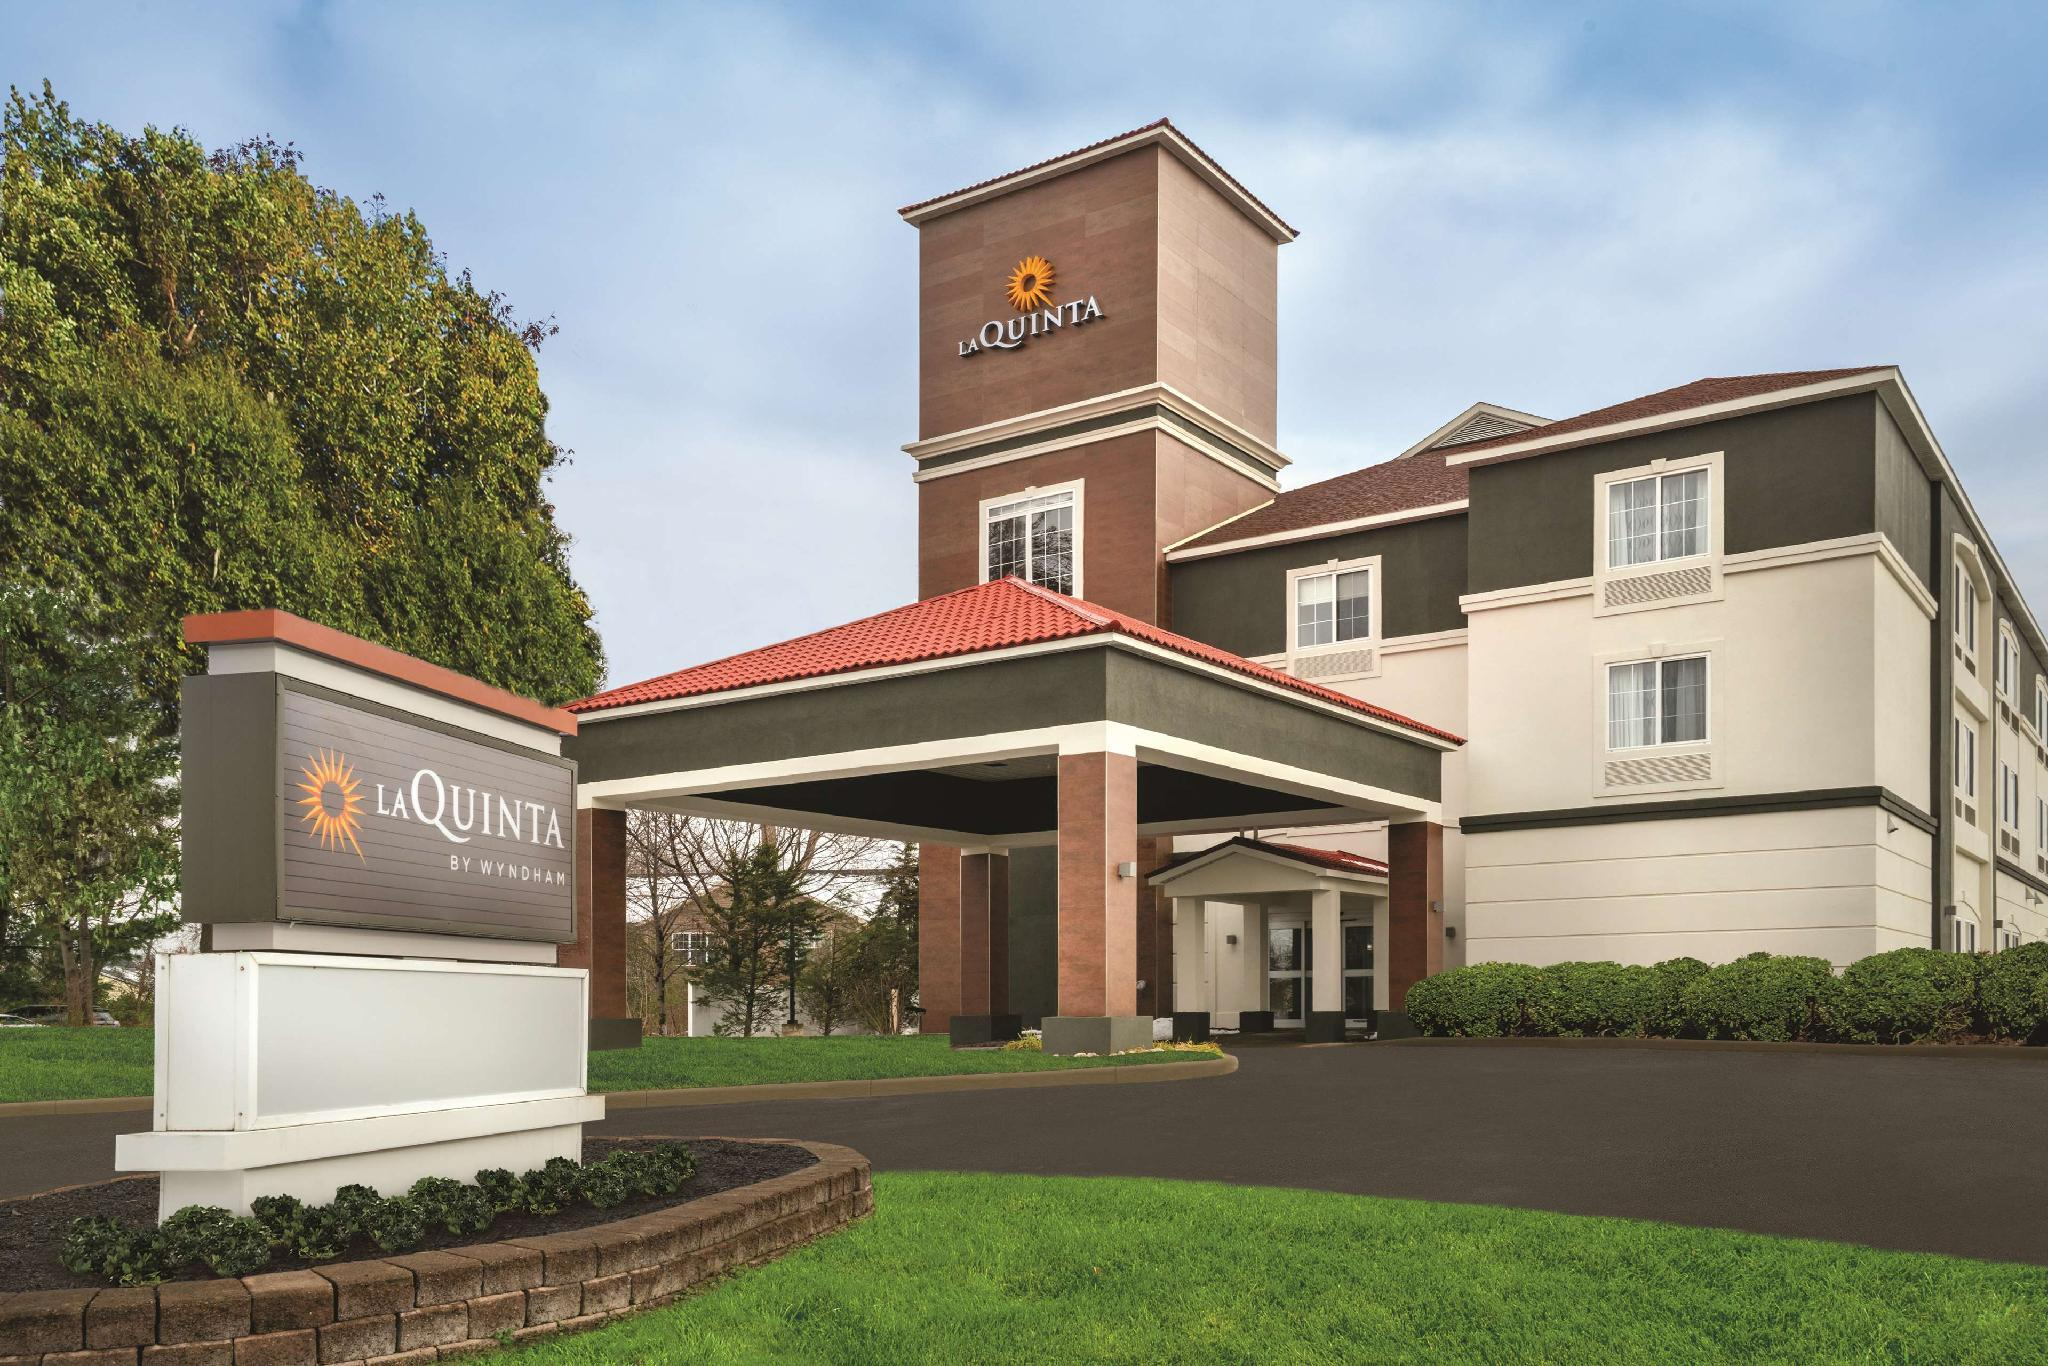 La Quinta Inn And Suites By Wyndham Latham Albany Airport